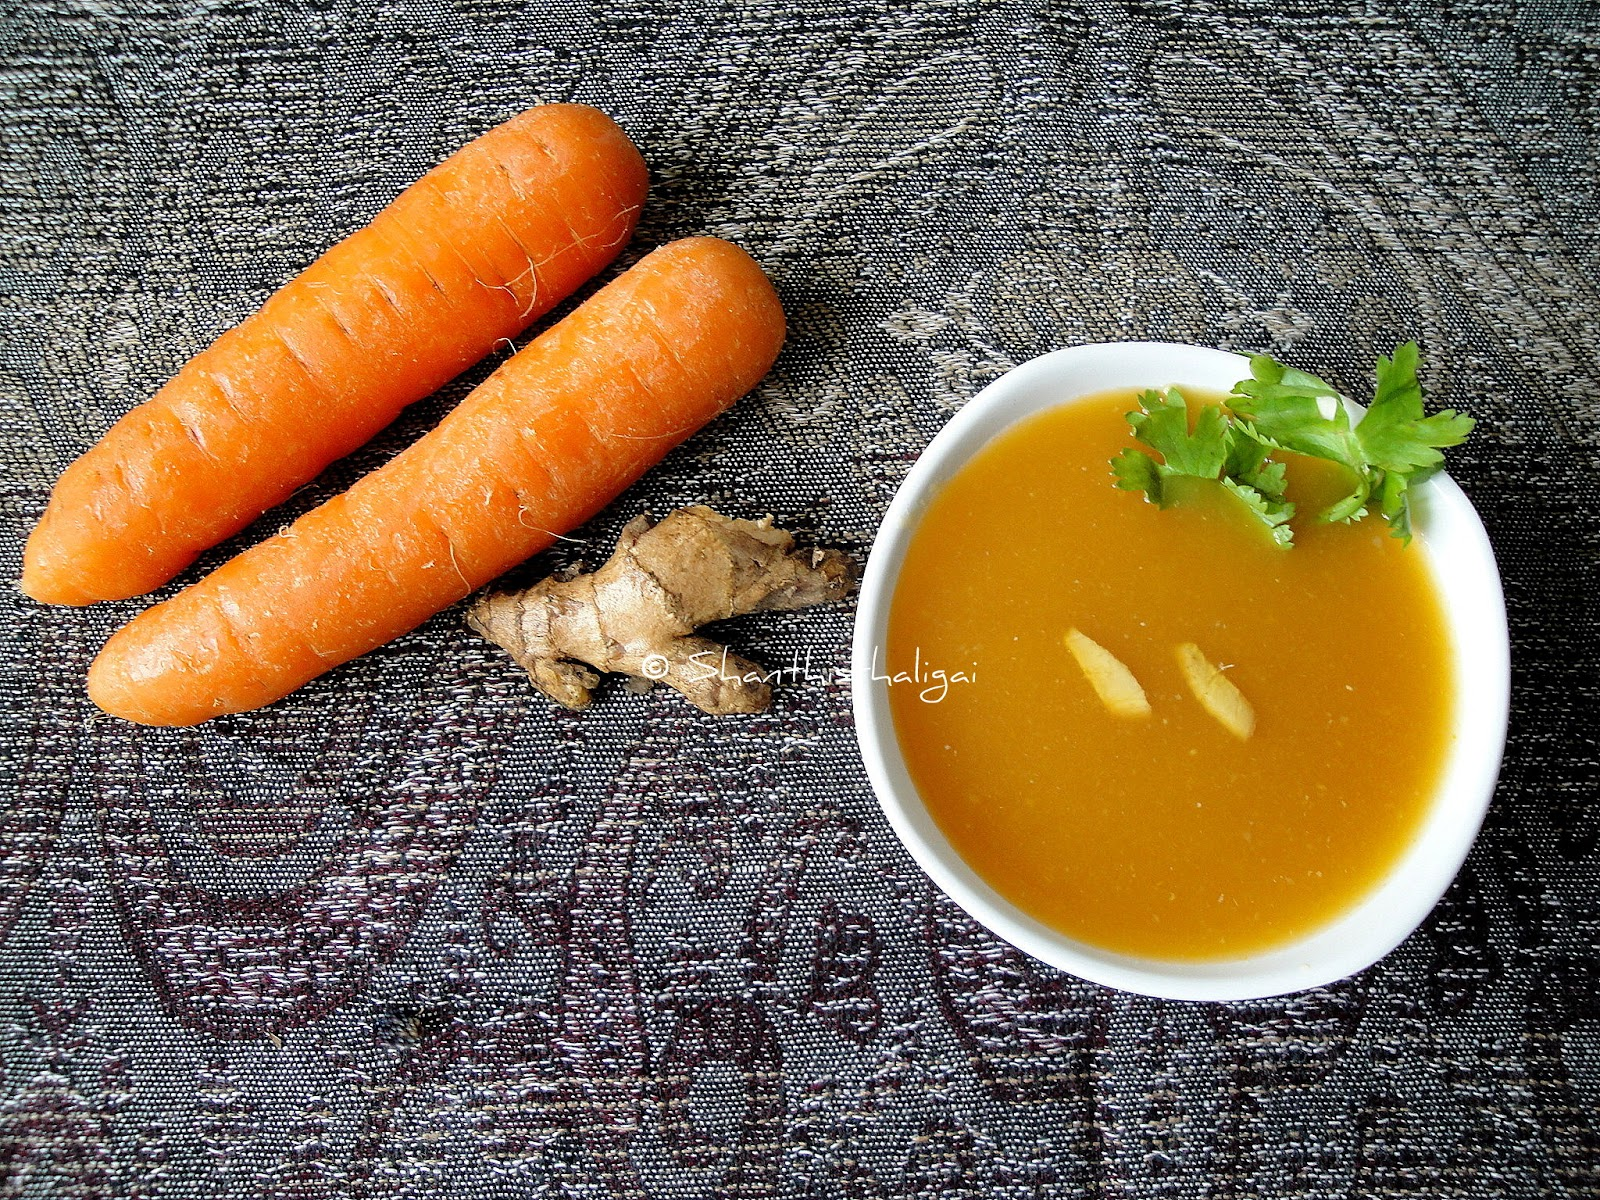 CARROT GINGER SOUP, CARROT AND GINGER SOUP, HOW TO MAKE CARROT GINGER SOUP